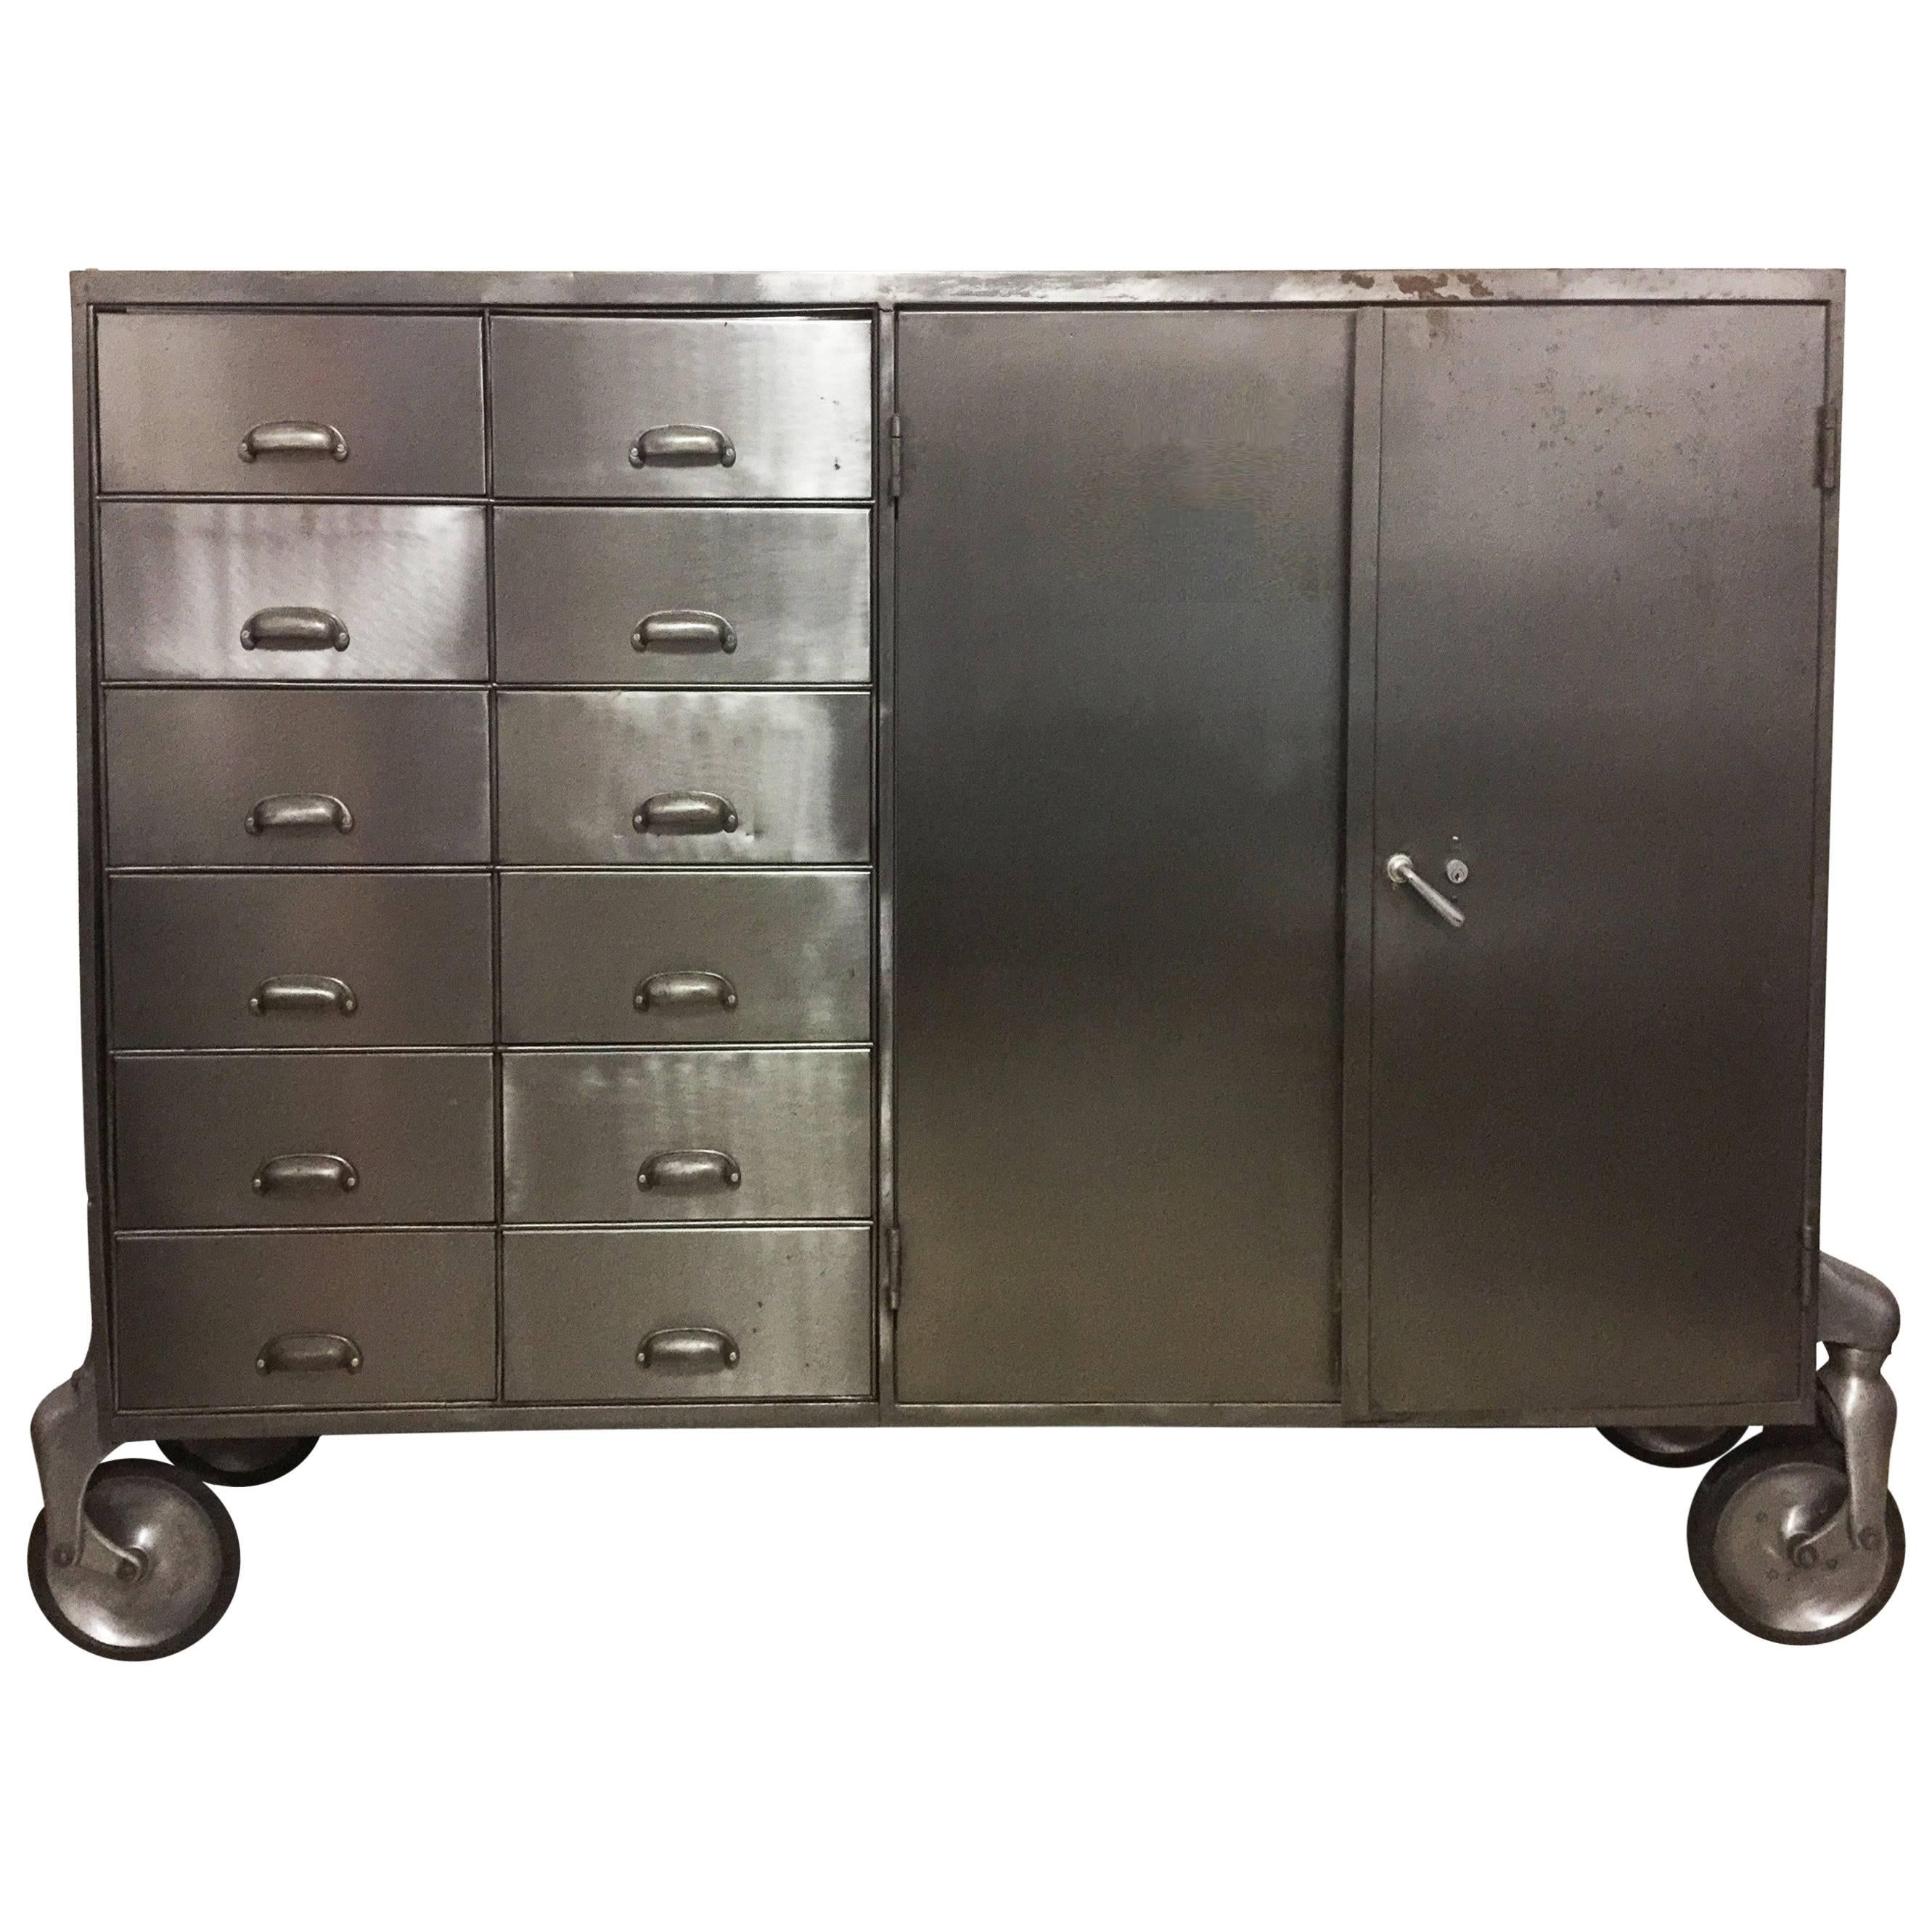 Industrial Metal Cabinet On Heavy Duty Casters, Drawers And Doors For Sale